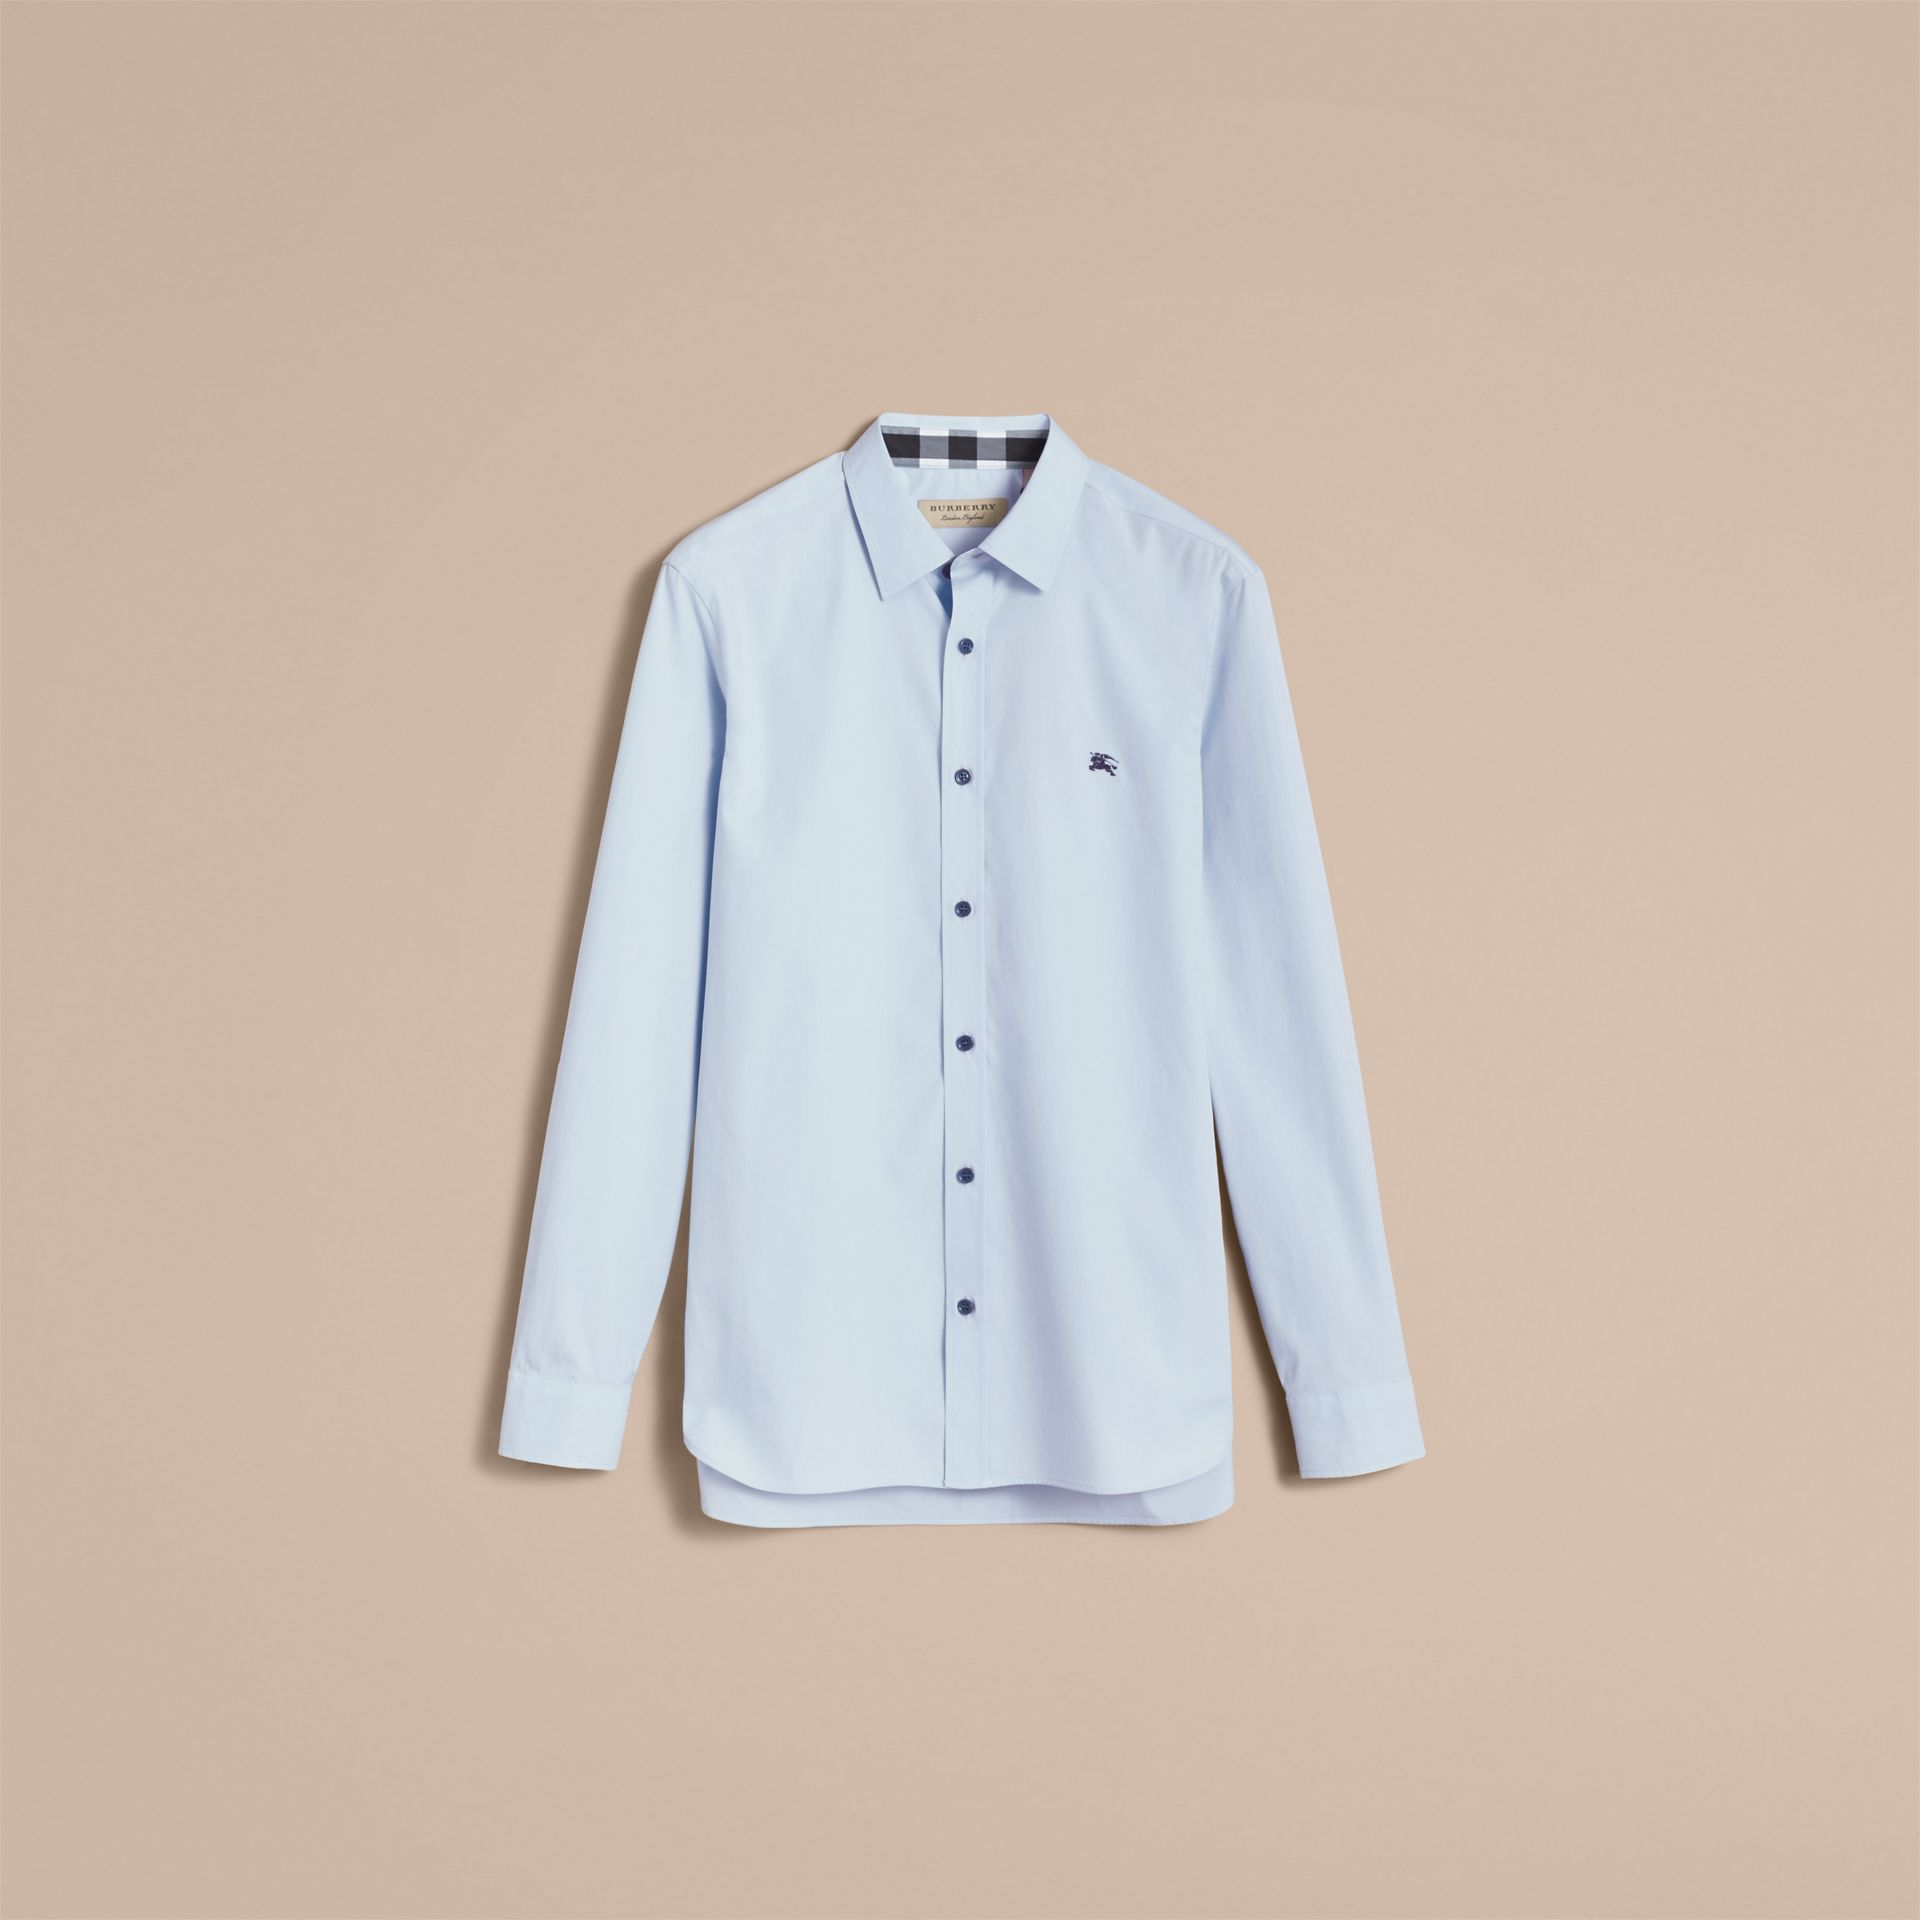 Resin Button Cotton Poplin Shirt in Pale Blue - Men | Burberry - gallery image 4